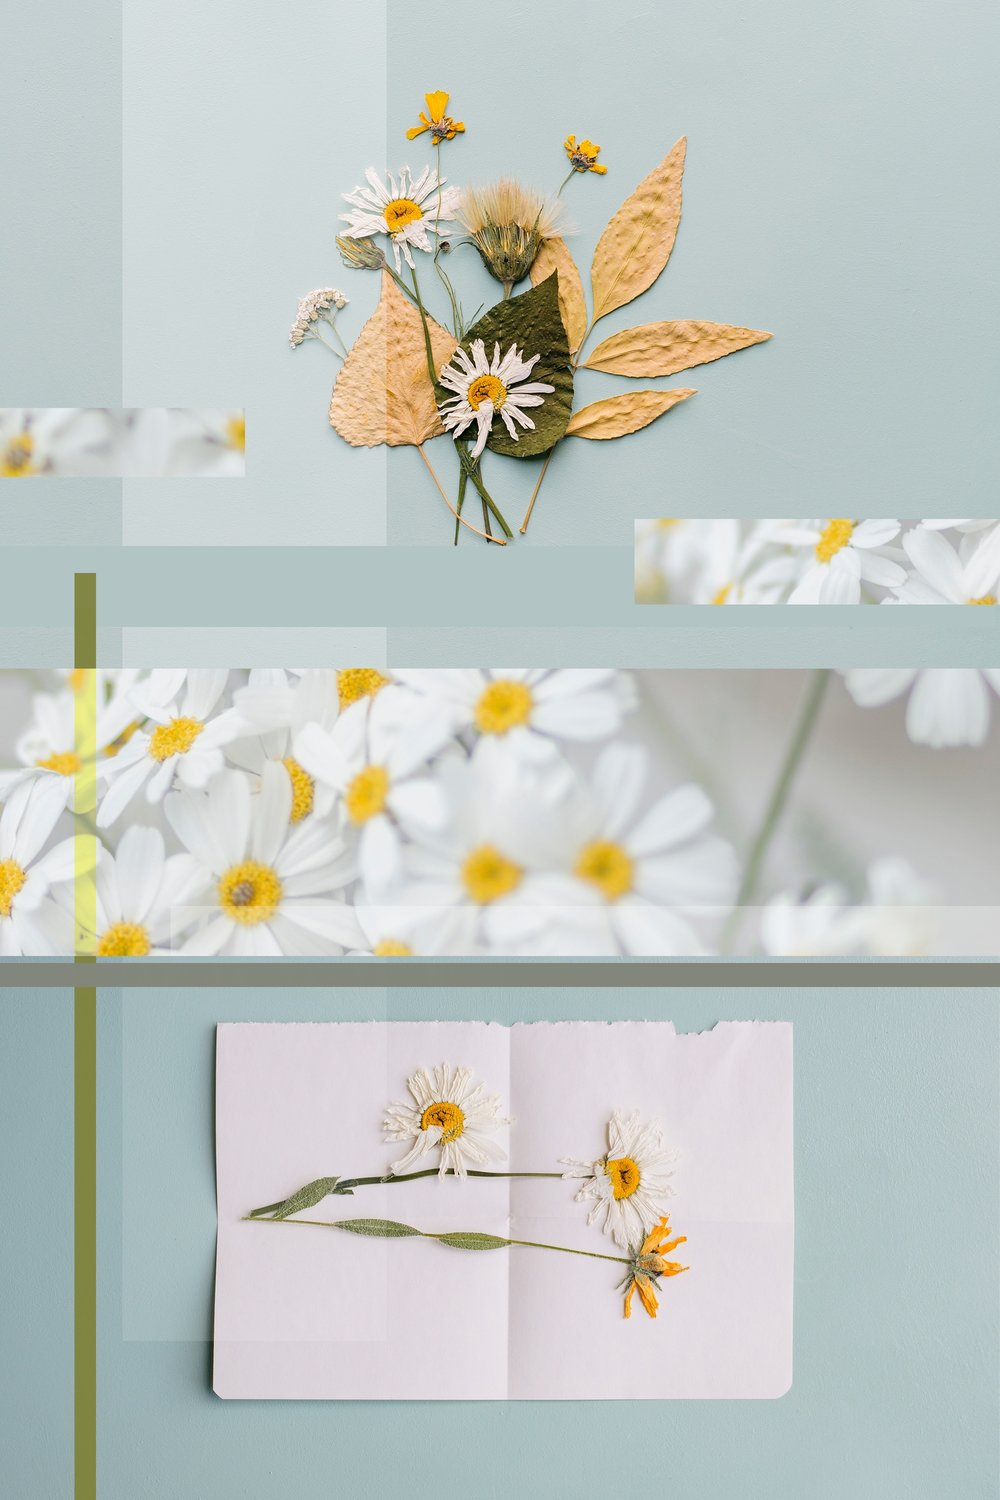 Spring Cleaning | Seed Design Consultancy